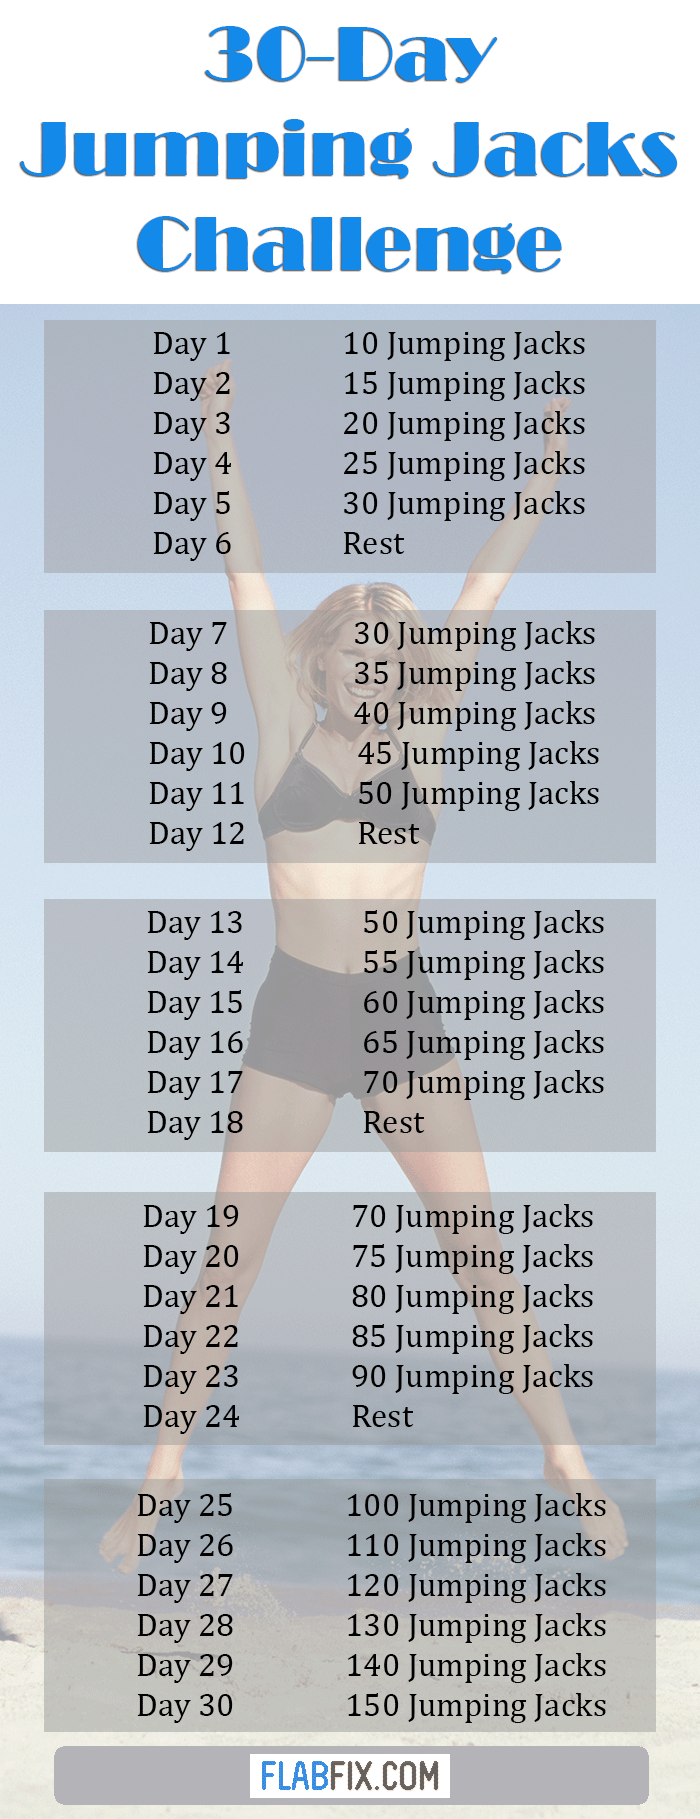 Take on the 30-day jumping jacks challenge if you want to lose weight fast #jumping #jacks #challenge #flabfix